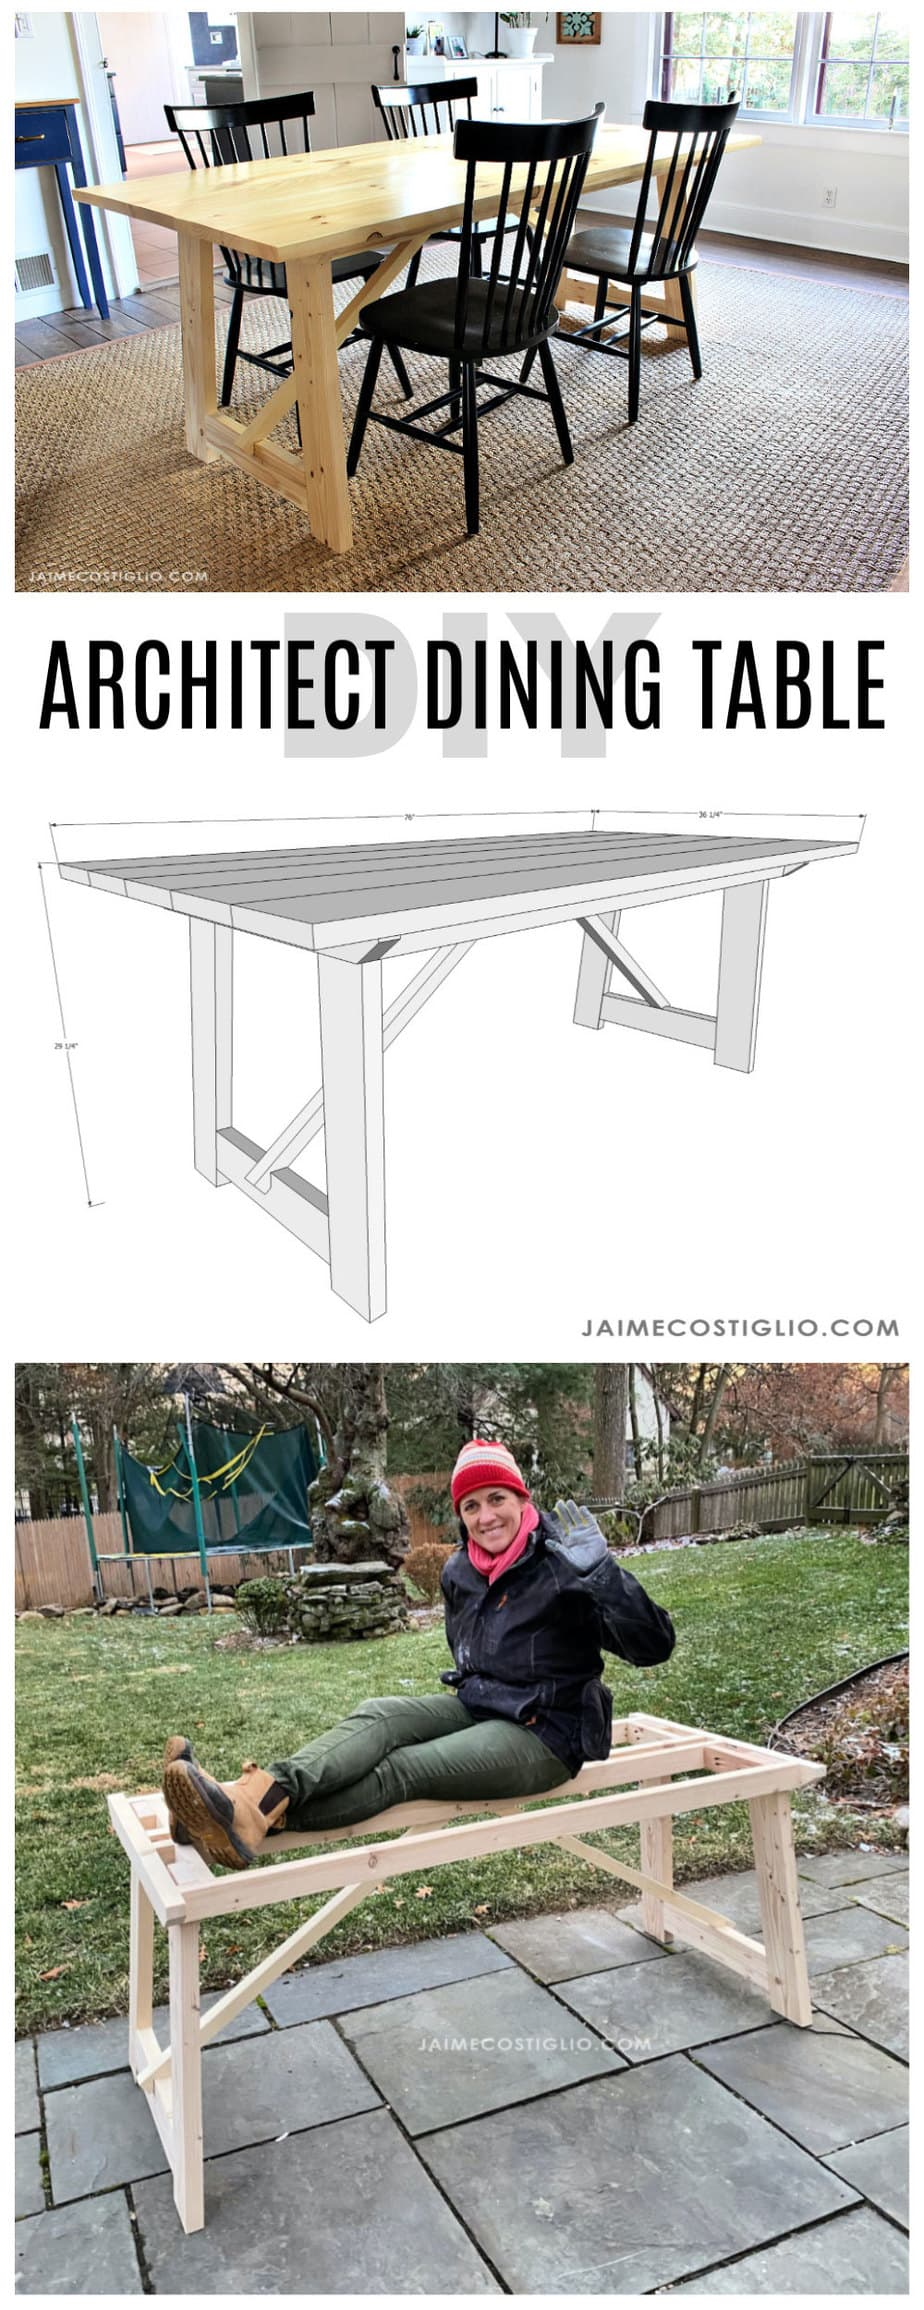 diy architect dining table free plans